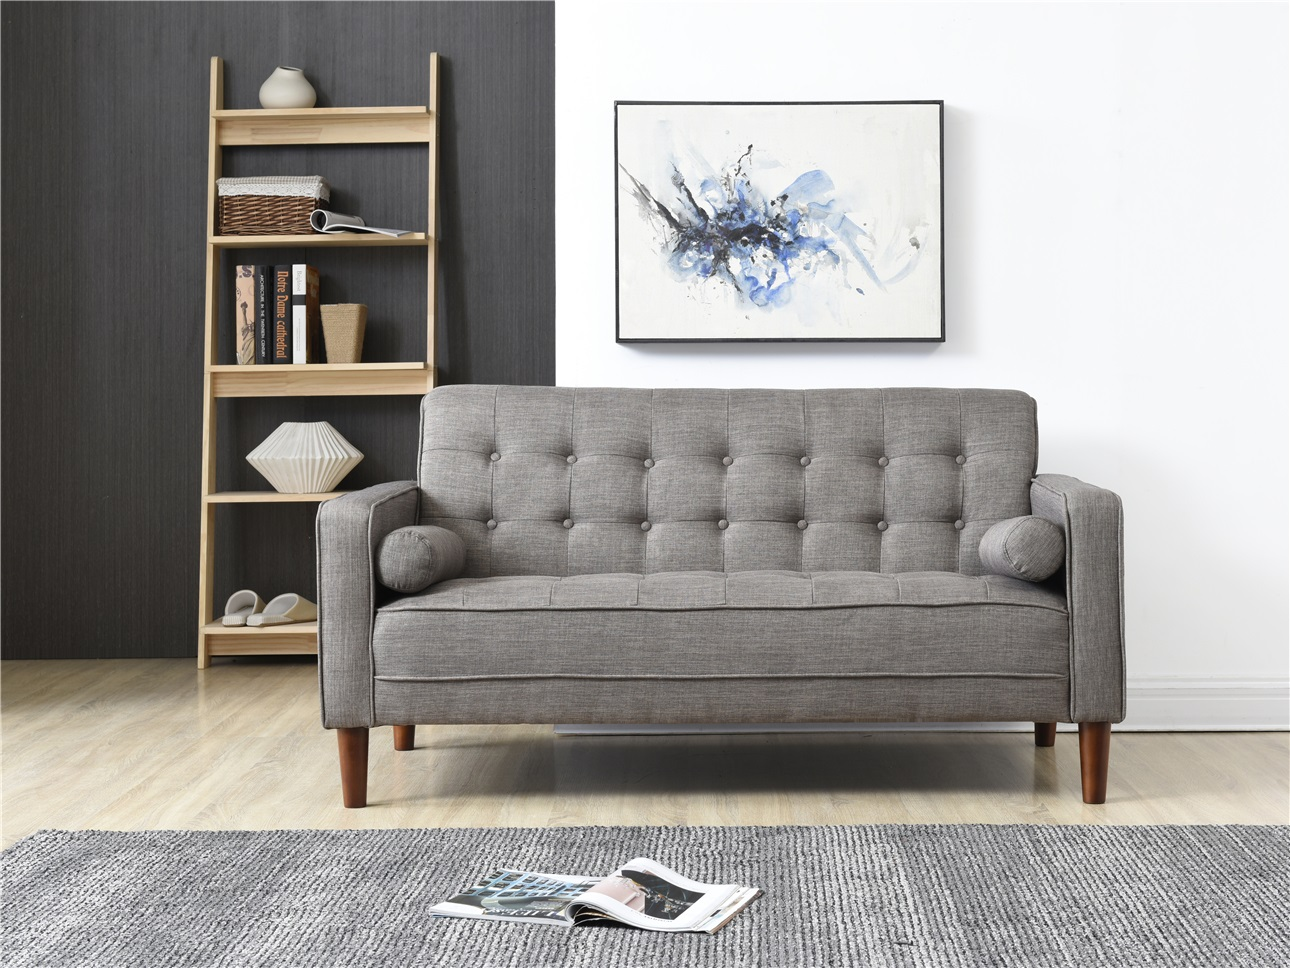 Merveilleux Nathaniel Home Nolan Small Space Sofa, Multiple Colors Image 1 Of 5